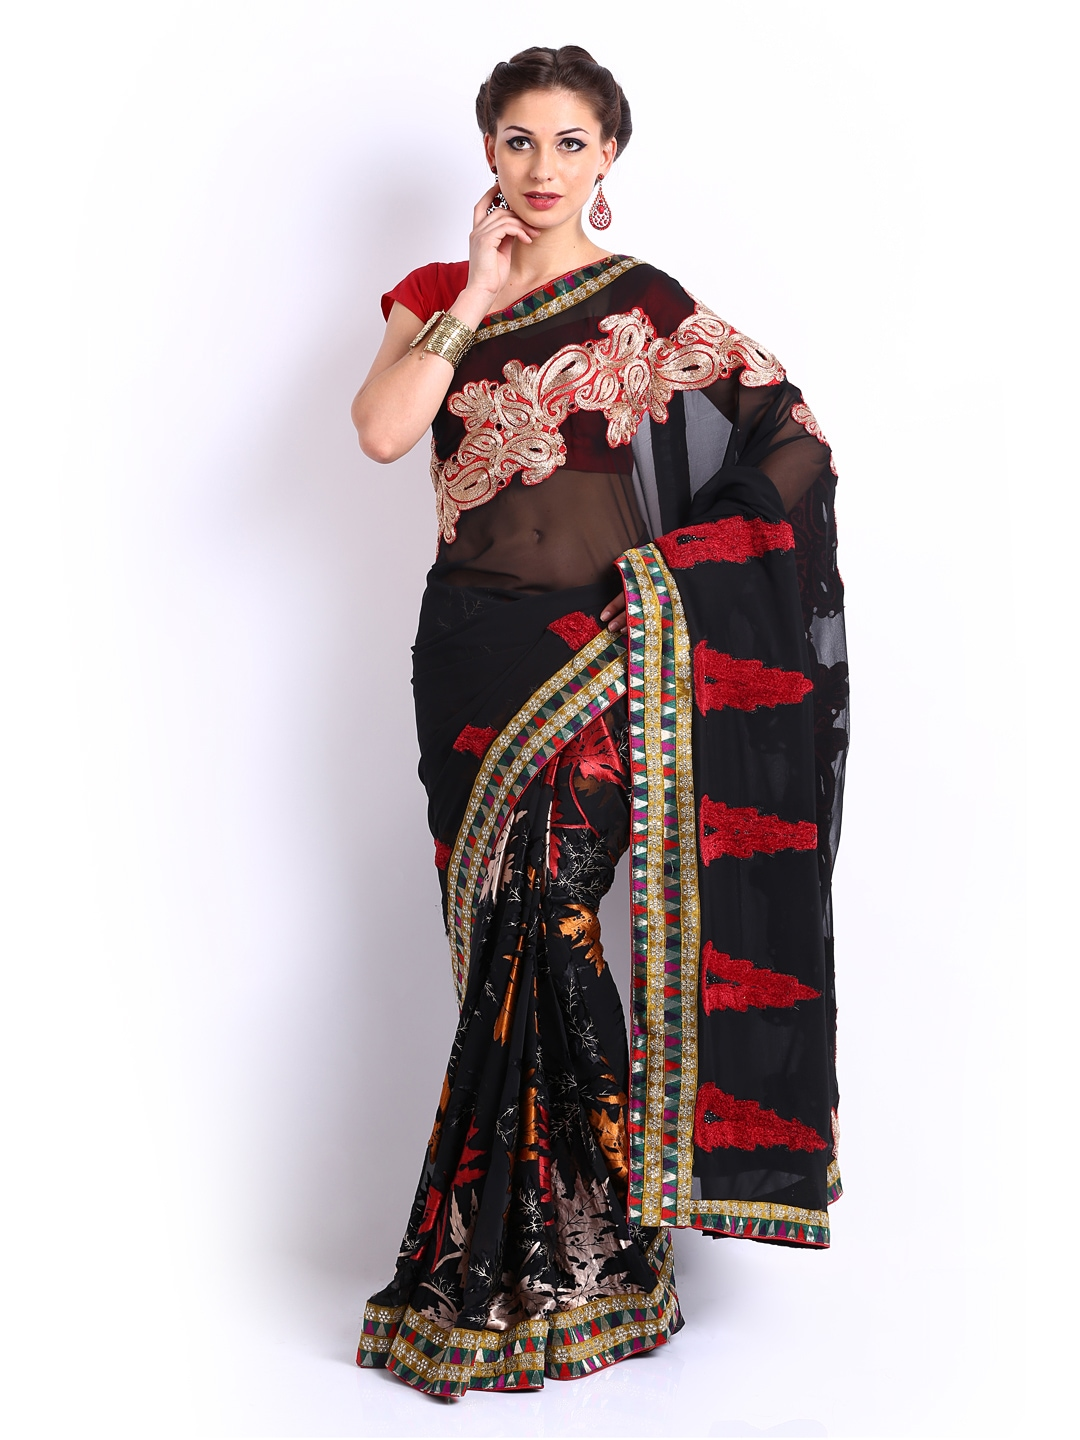 Ambica Black Embroidered Georgette Fashion Saree available at Myntra for Rs.259020